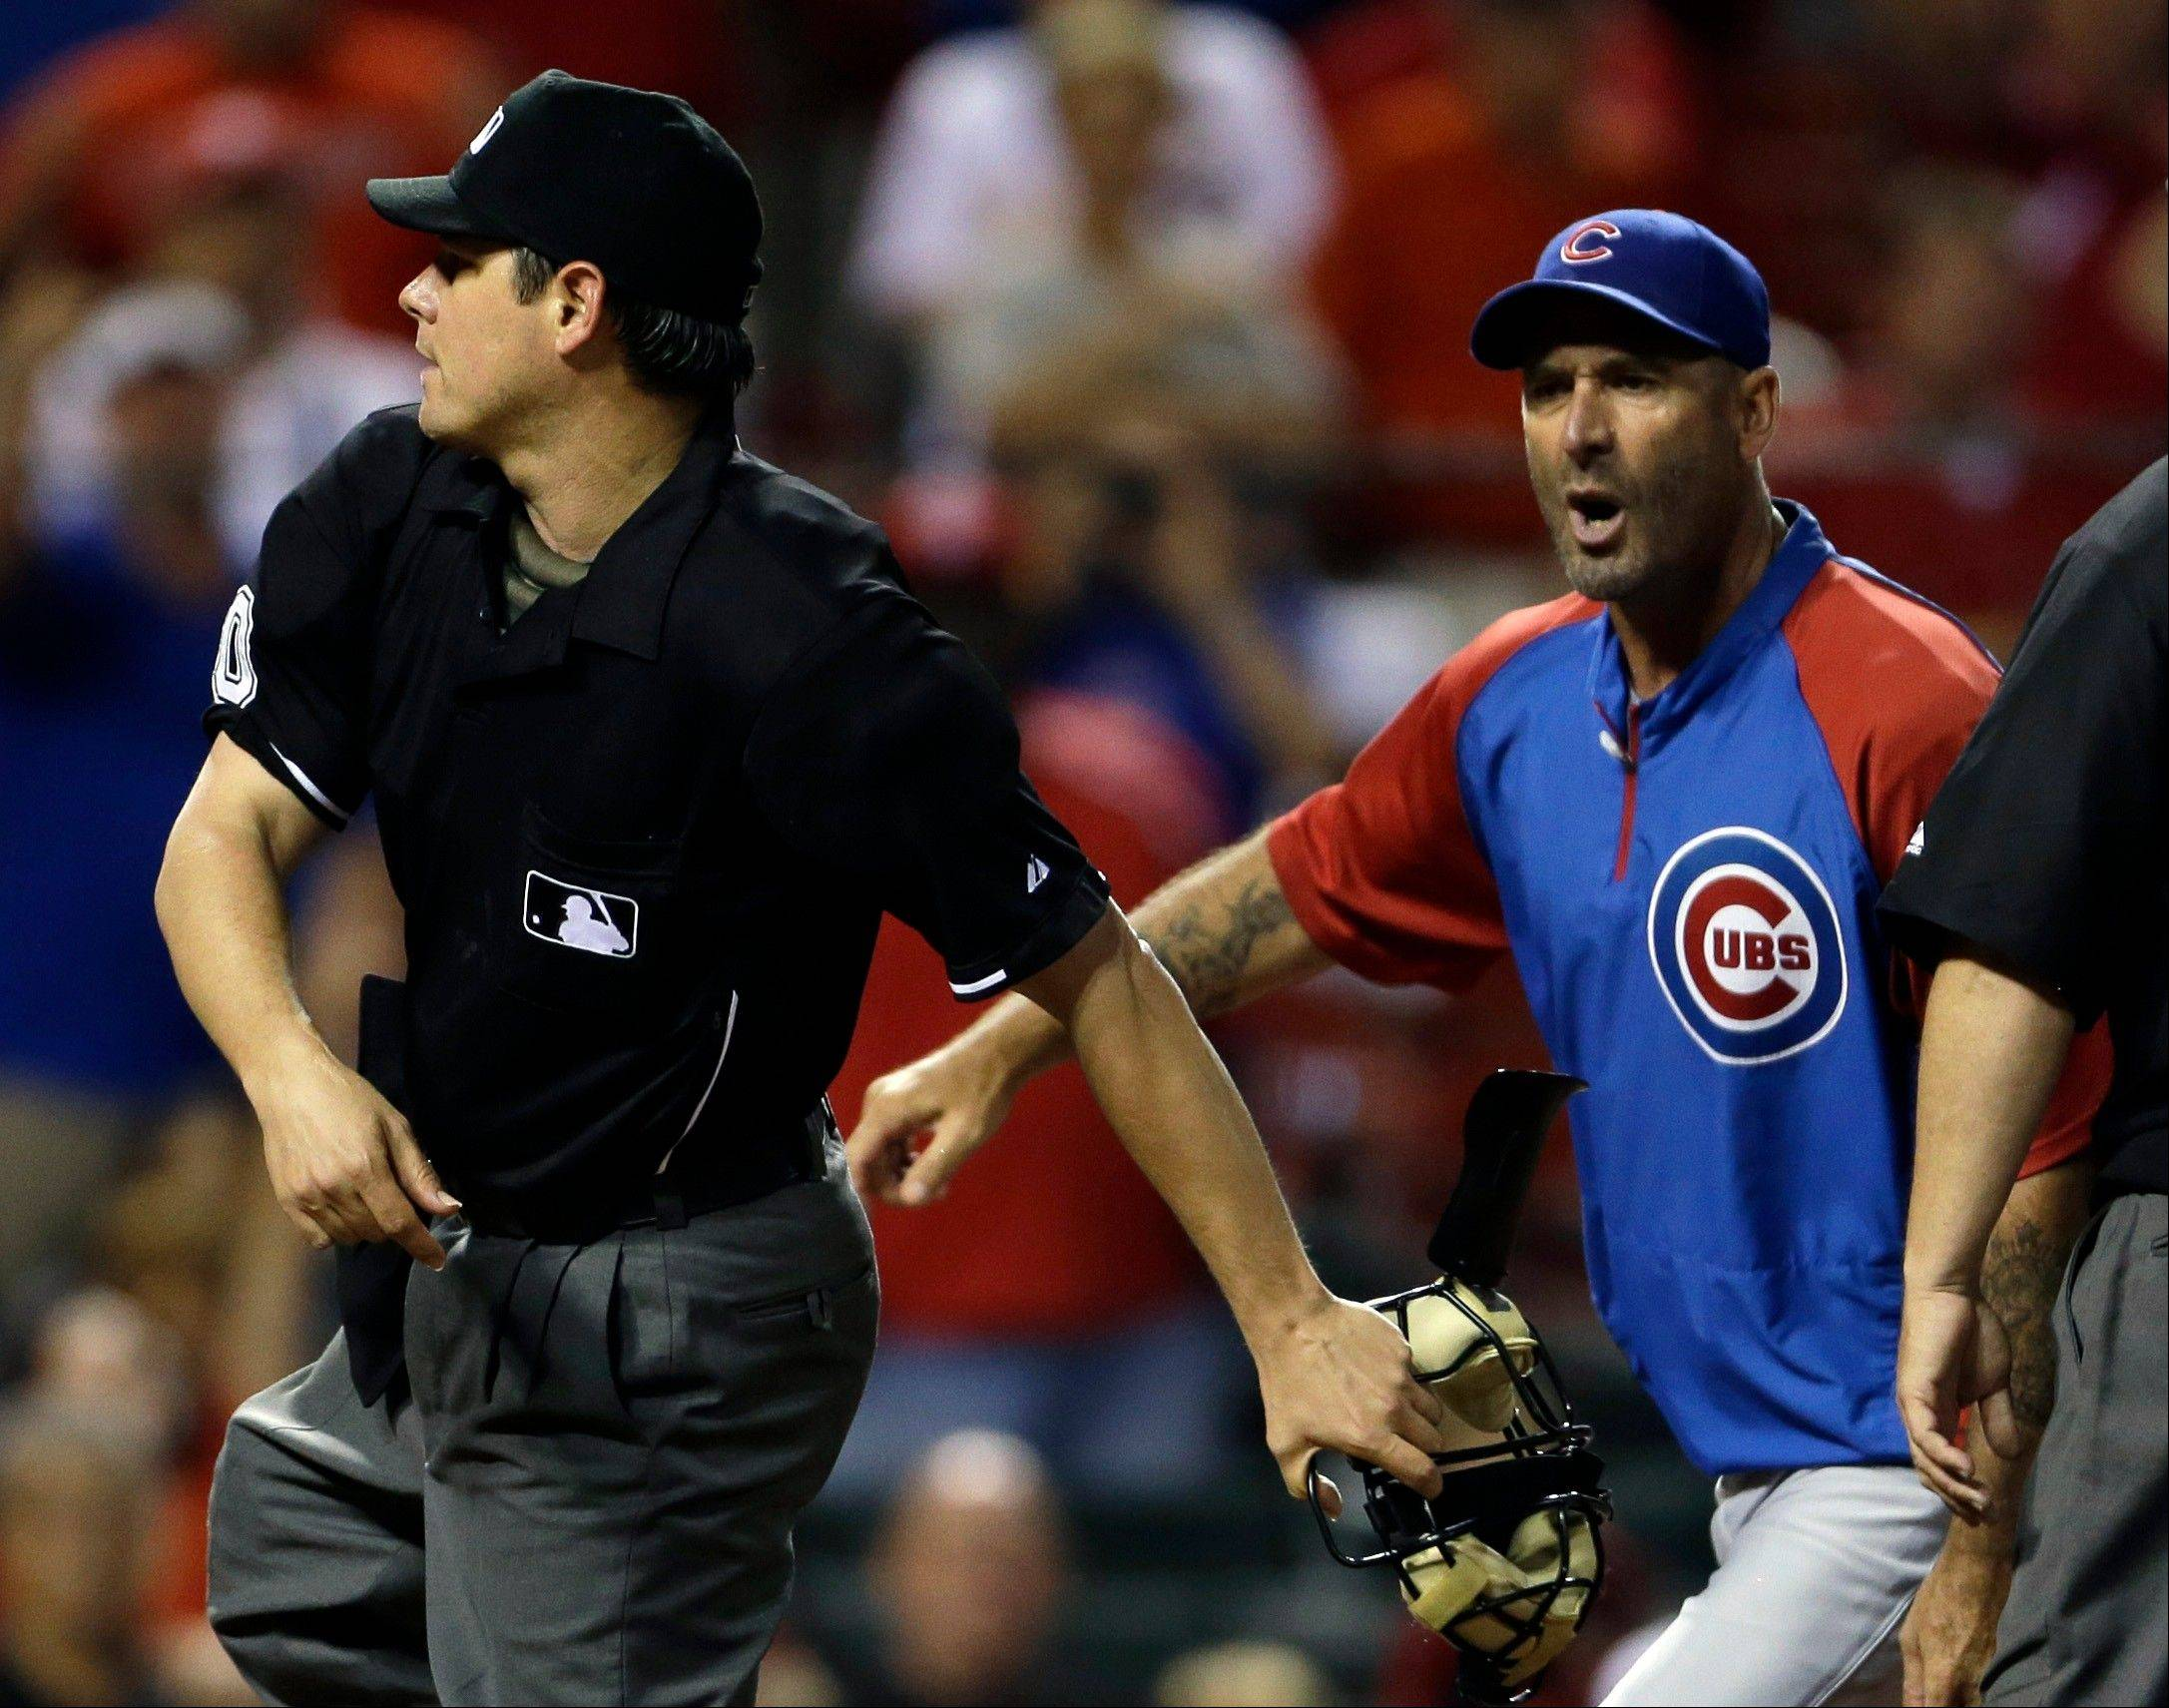 Cubs manager Dale Sveum is thrown out by home plate umpire D.J. Reyburn during the seventh inning Monday in St. Louis. Sveum was arguing whether the Cardinals' Yadier Molina had eluded a tag at home plate.